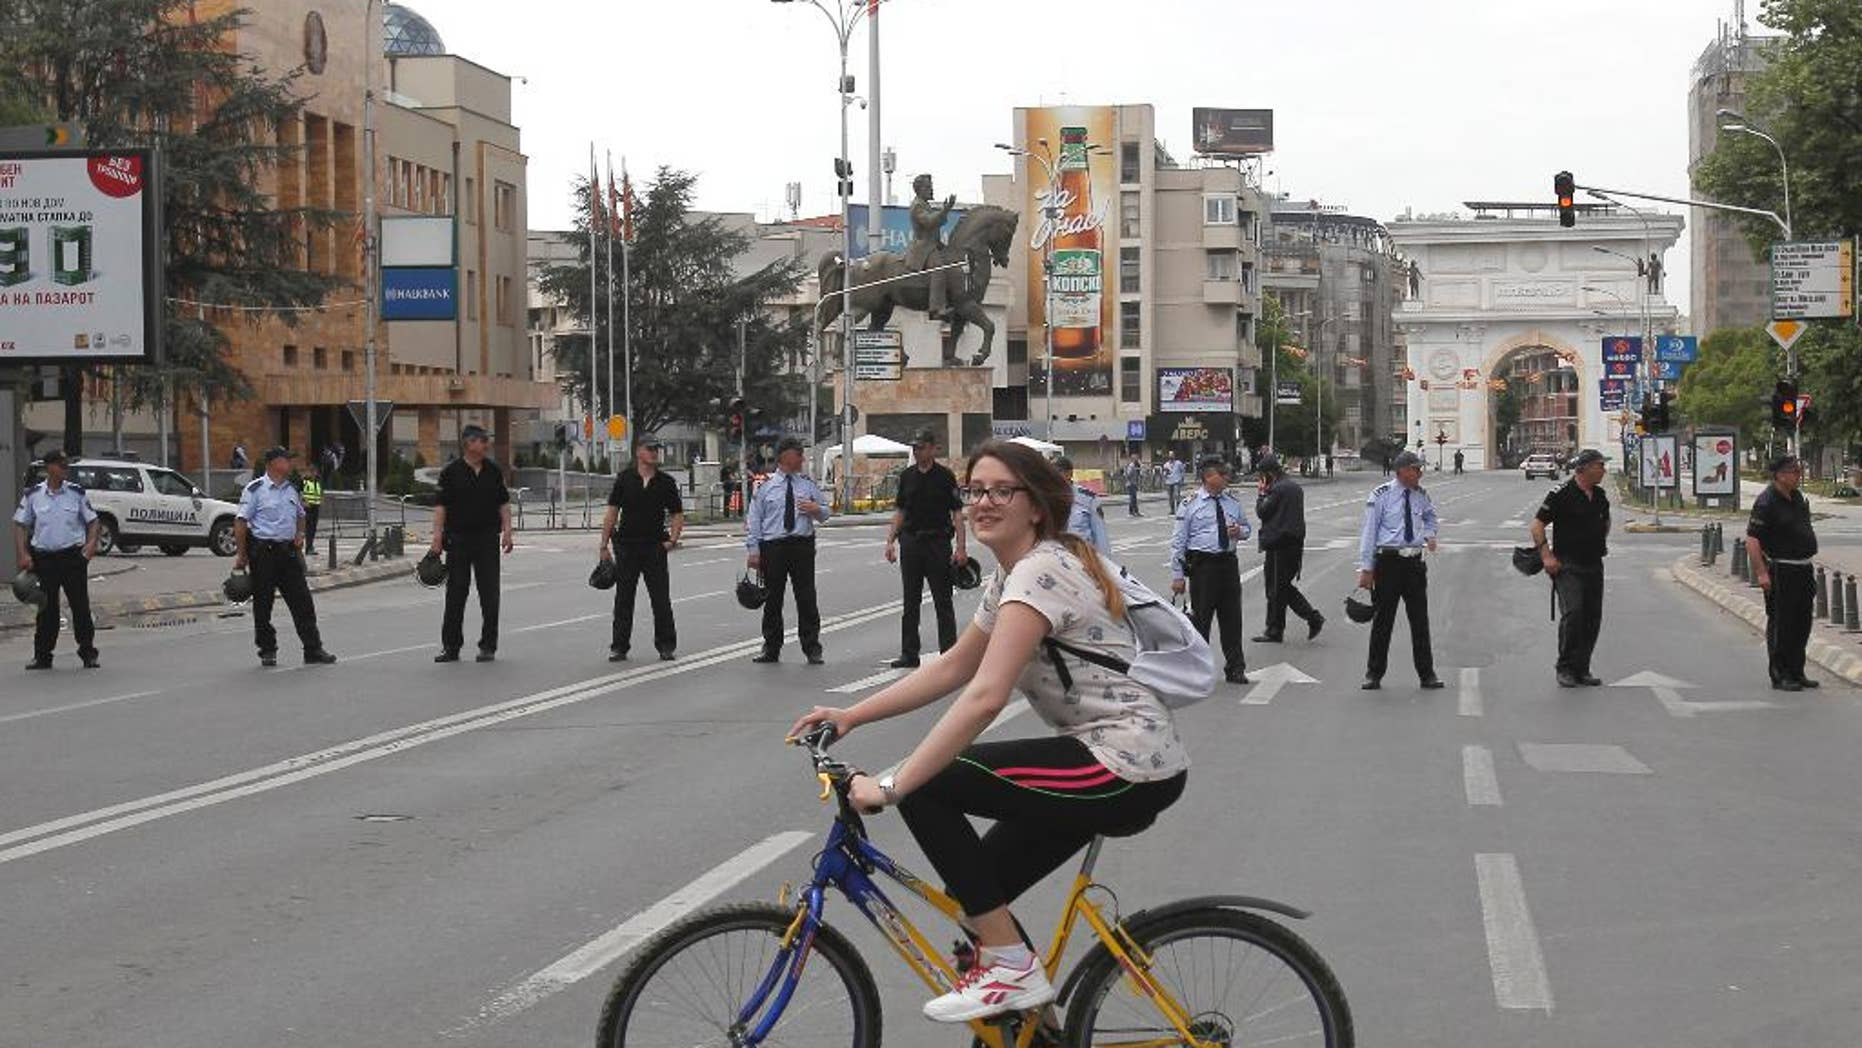 A girl rides a bicycle near a police cordon that blocks the street in front of the parliament building in Skopje, Macedonia, Friday, April 28, 2017.  More than 100 people were injured Thursday evening including protestors, policemen and lawmakers, after protesters broke through a police cordon and entered Macedonian parliament to protest the election of a new speaker, despite a months-long deadlock in talks to form a new government. (AP Photo/Boris Grdanoski)